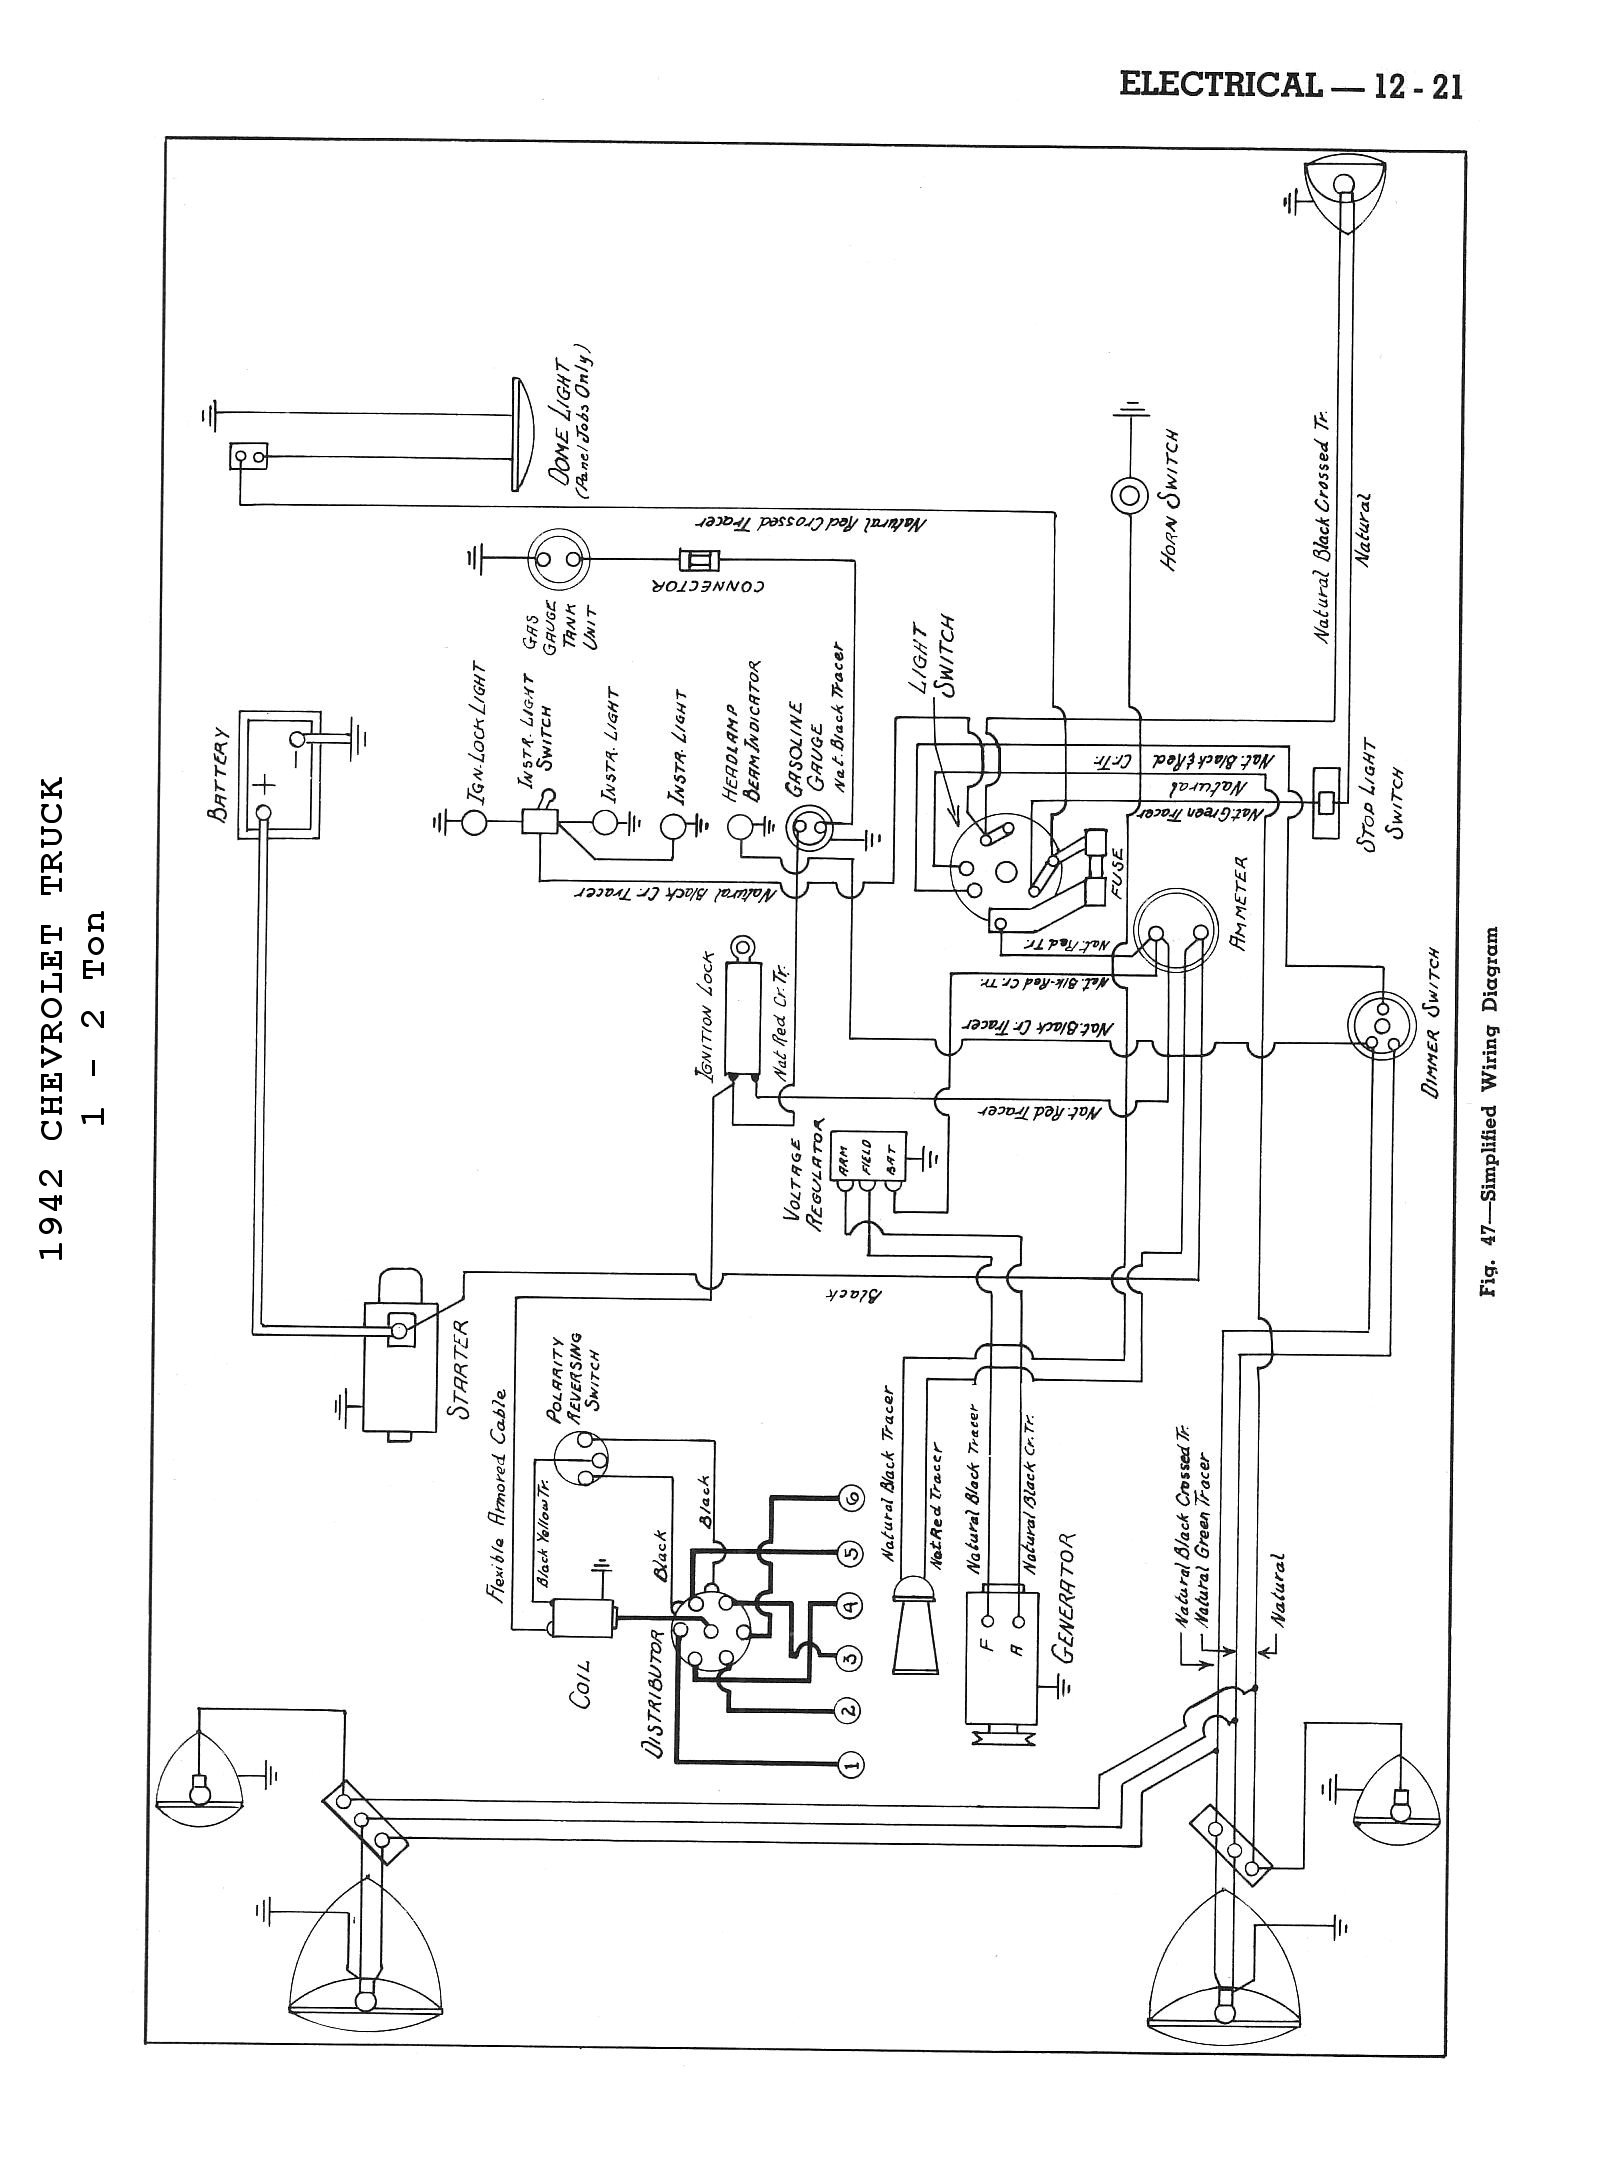 42cm4x2t1221 cm wiring diagram cm hoist wiring diagram \u2022 wiring diagrams j cm lodestar wiring diagram at aneh.co